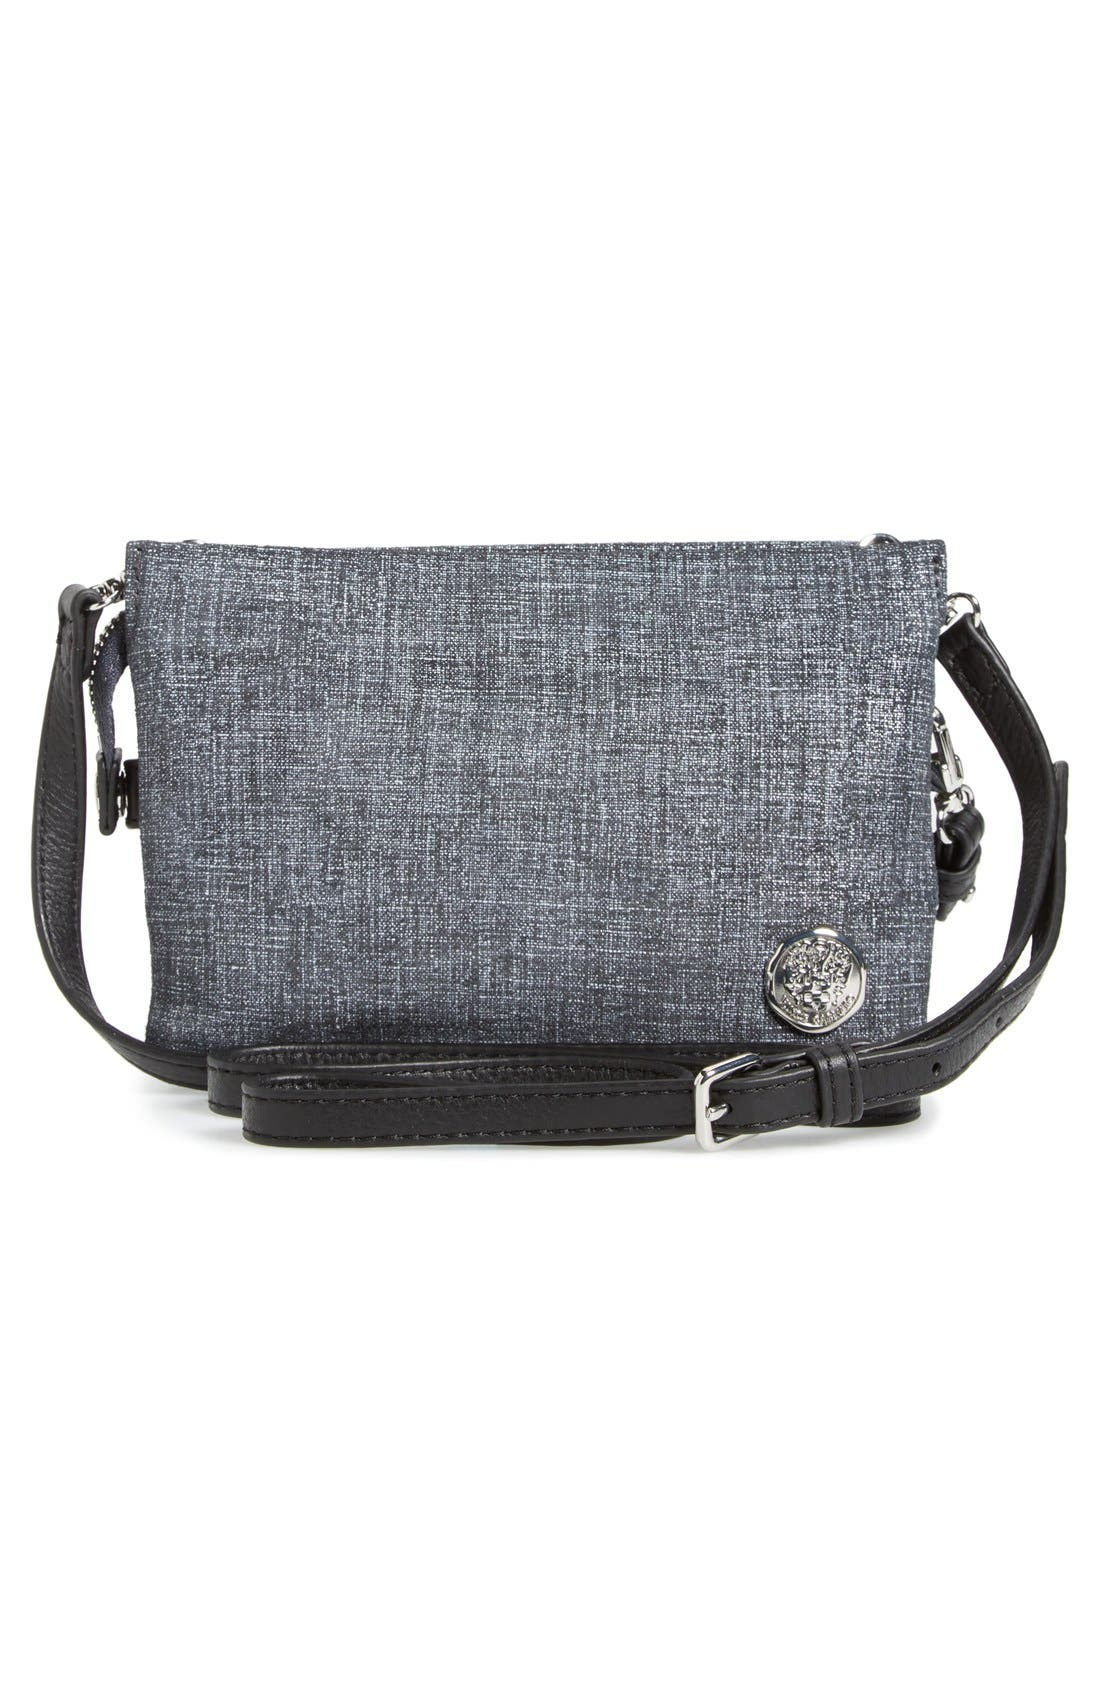 'Cami' Leather Crossbody Bag,                             Alternate thumbnail 88, color,